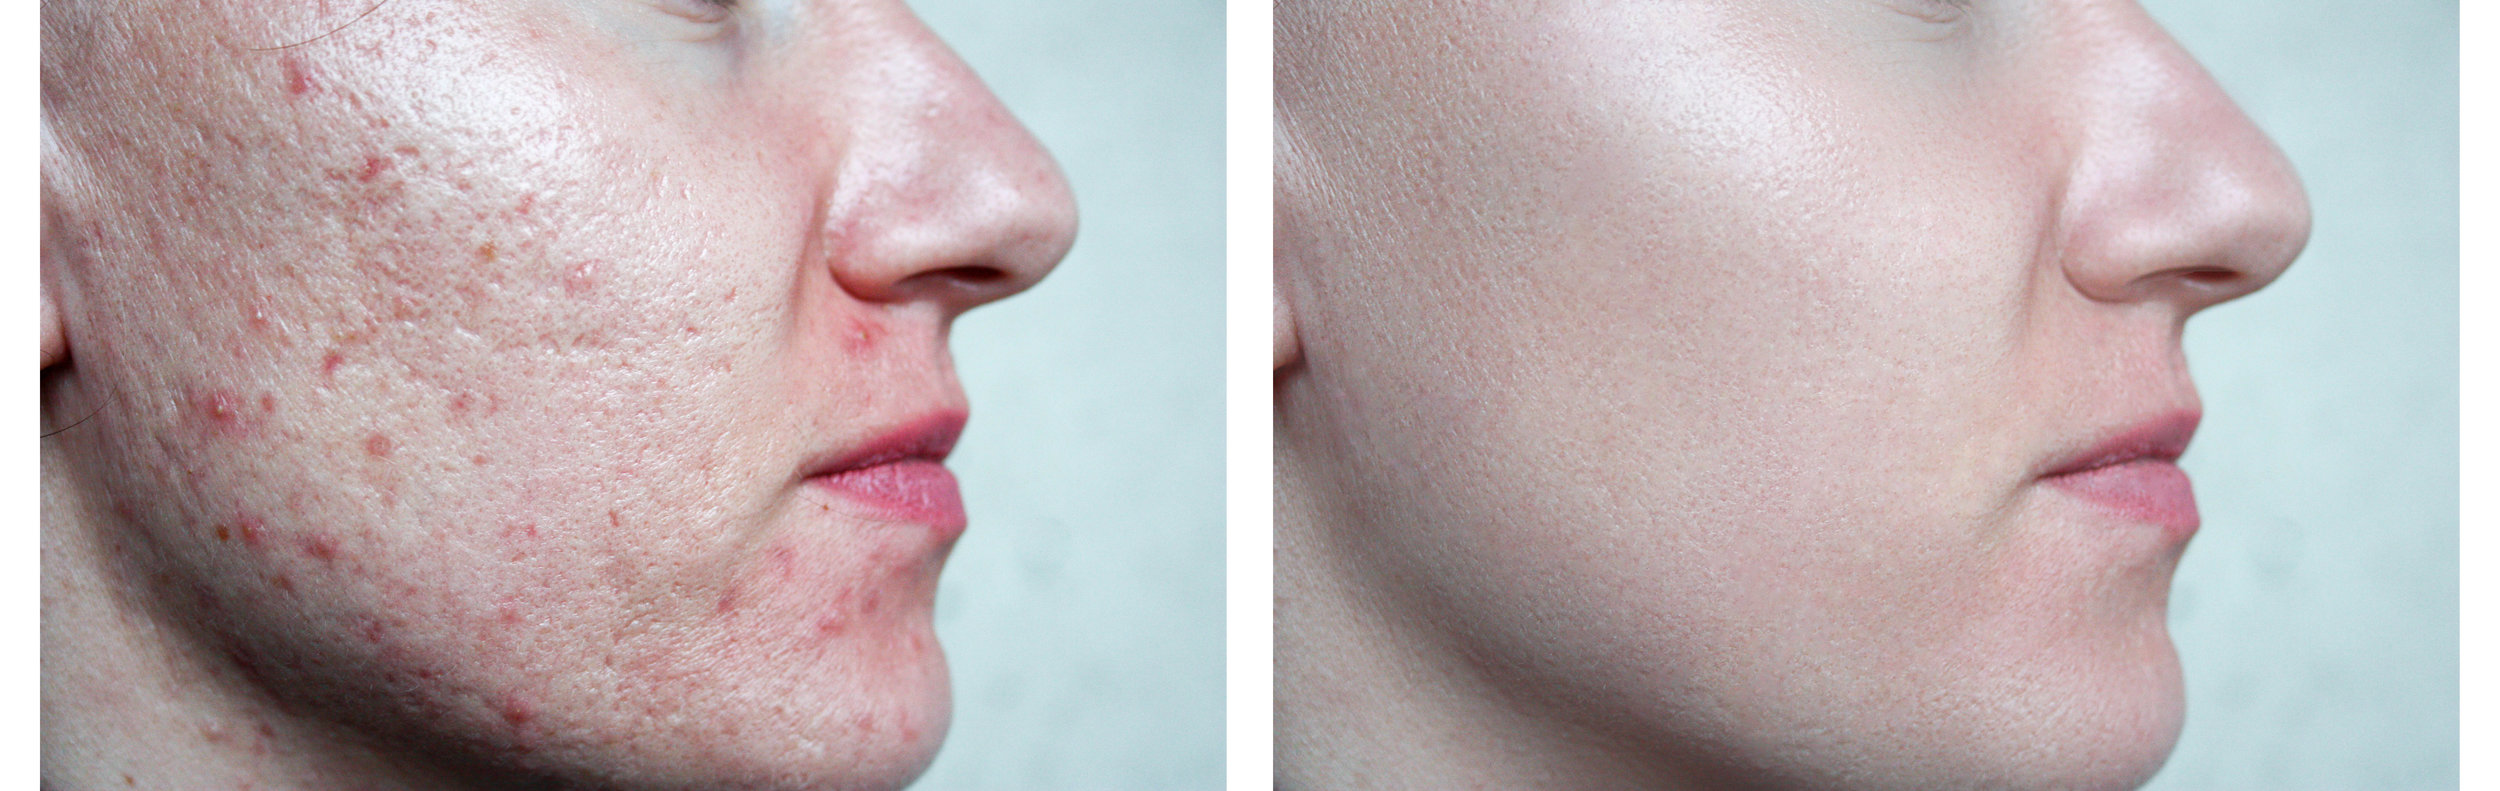 Before and after treating with a combination of IPL for active acne breakouts and microneedling for acne scarring.